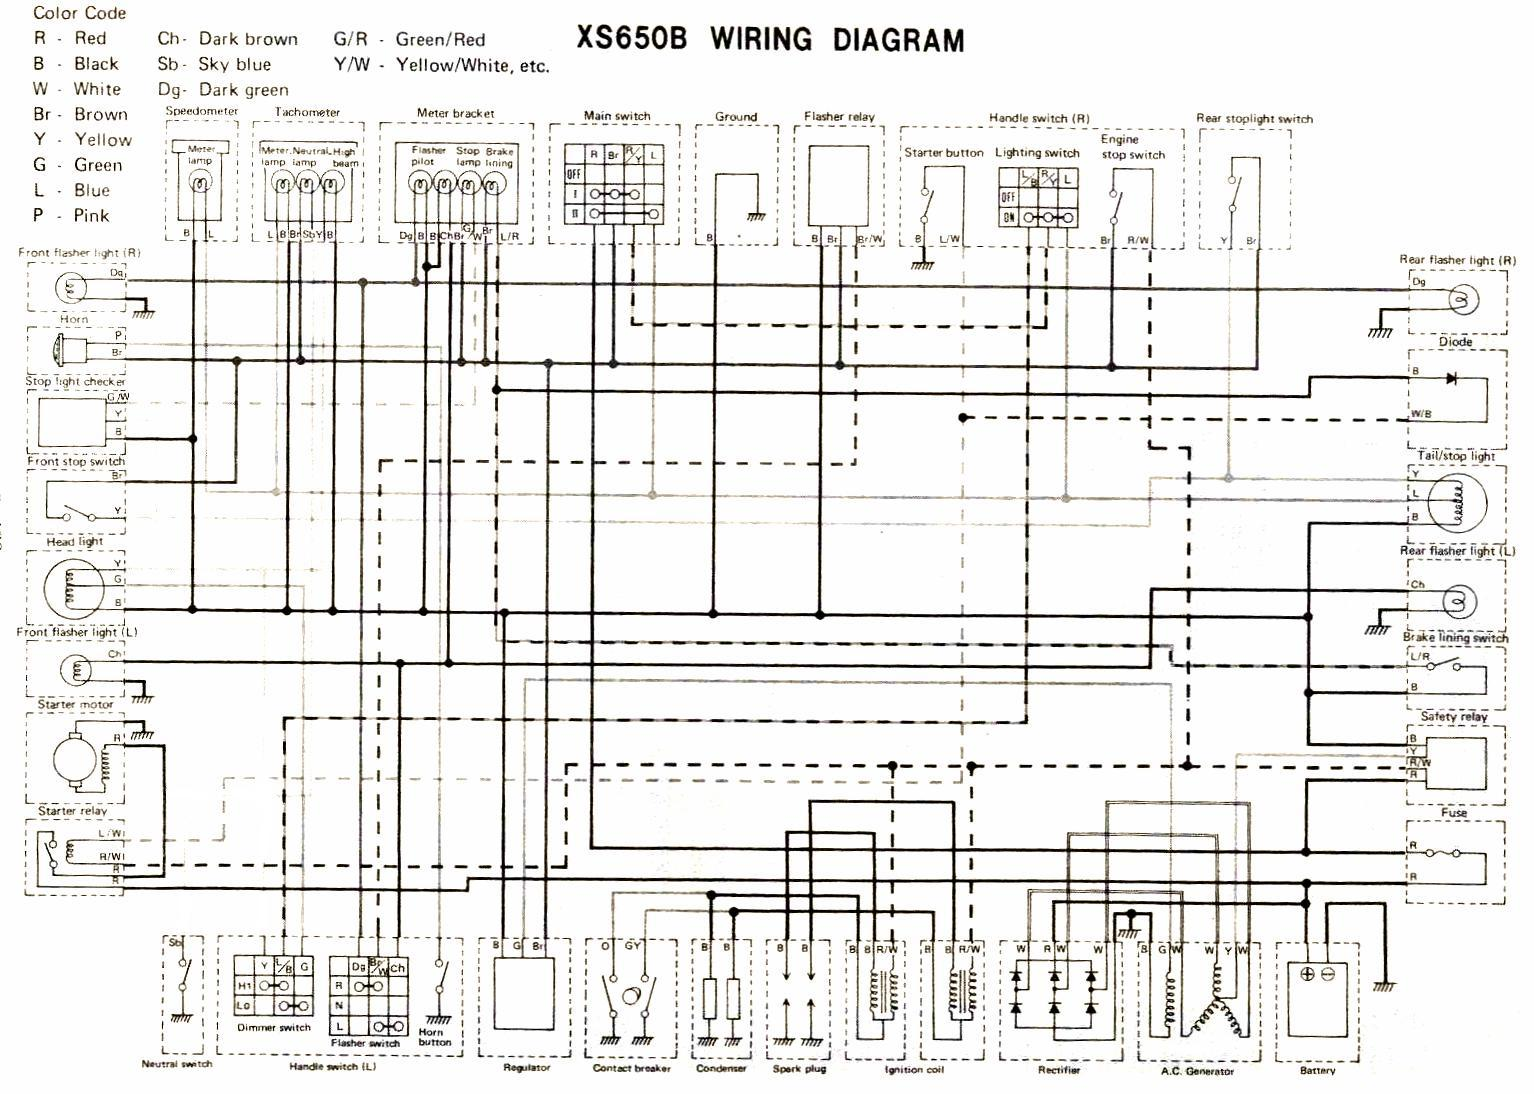 wiring diagrams rh oregonmotorcycleparts com 78 yamaha xs1100 wiring diagram 1982 Yamaha Maxim 1100 Parts